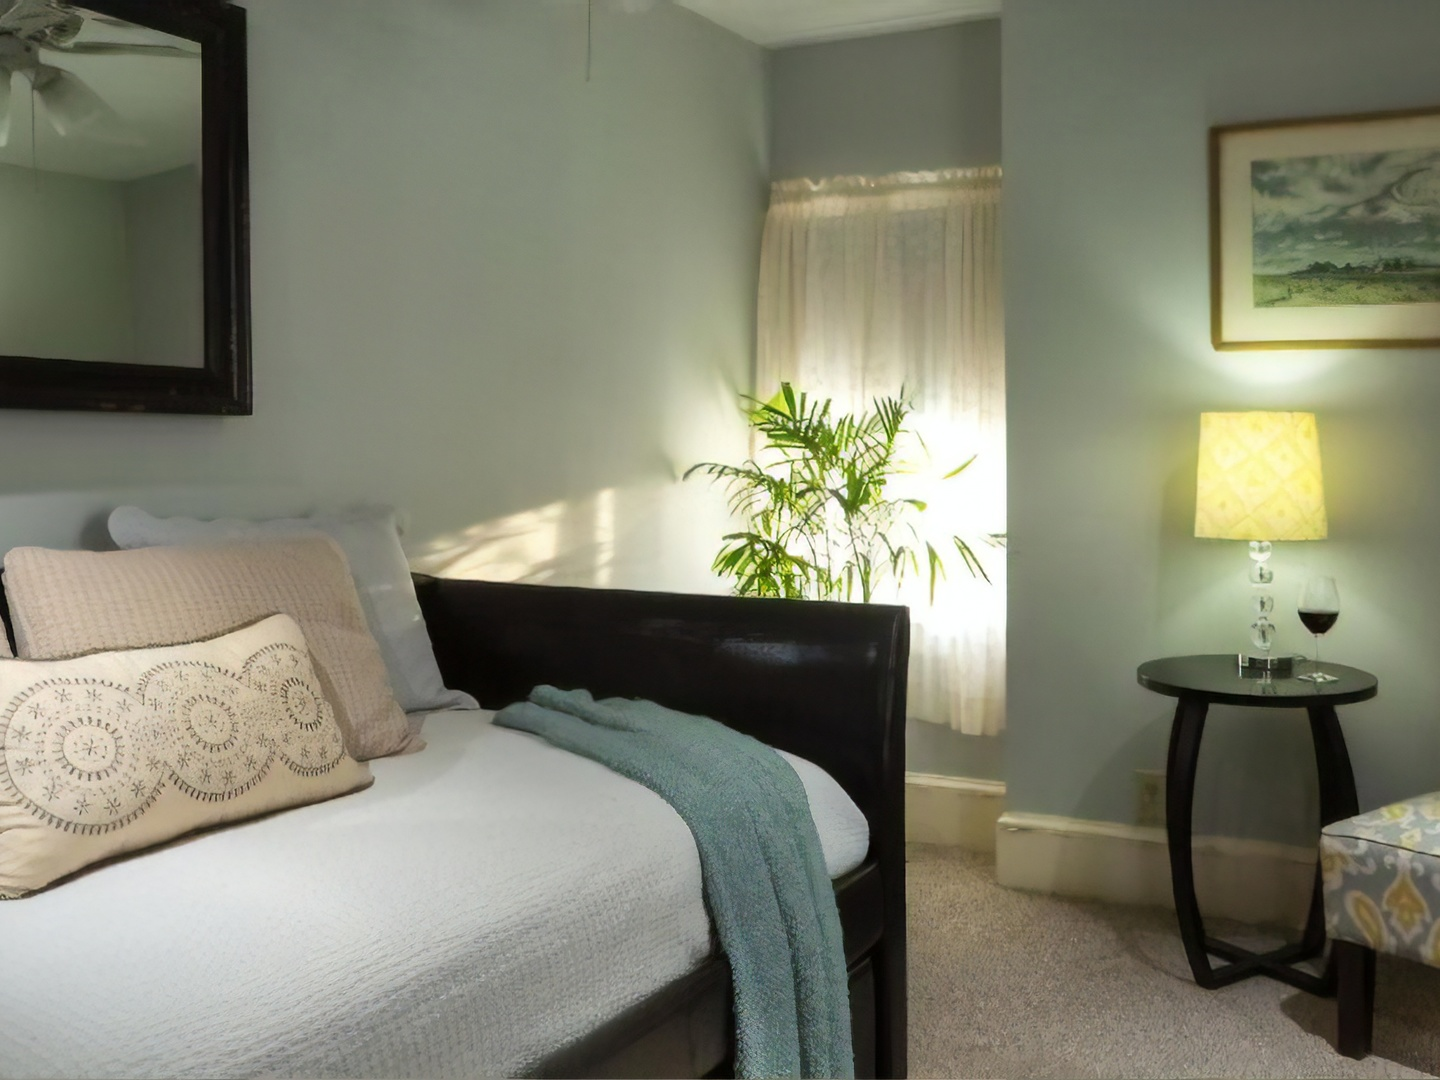 A bedroom with a bed and desk in a hotel room at Carroll Villa Hotel.